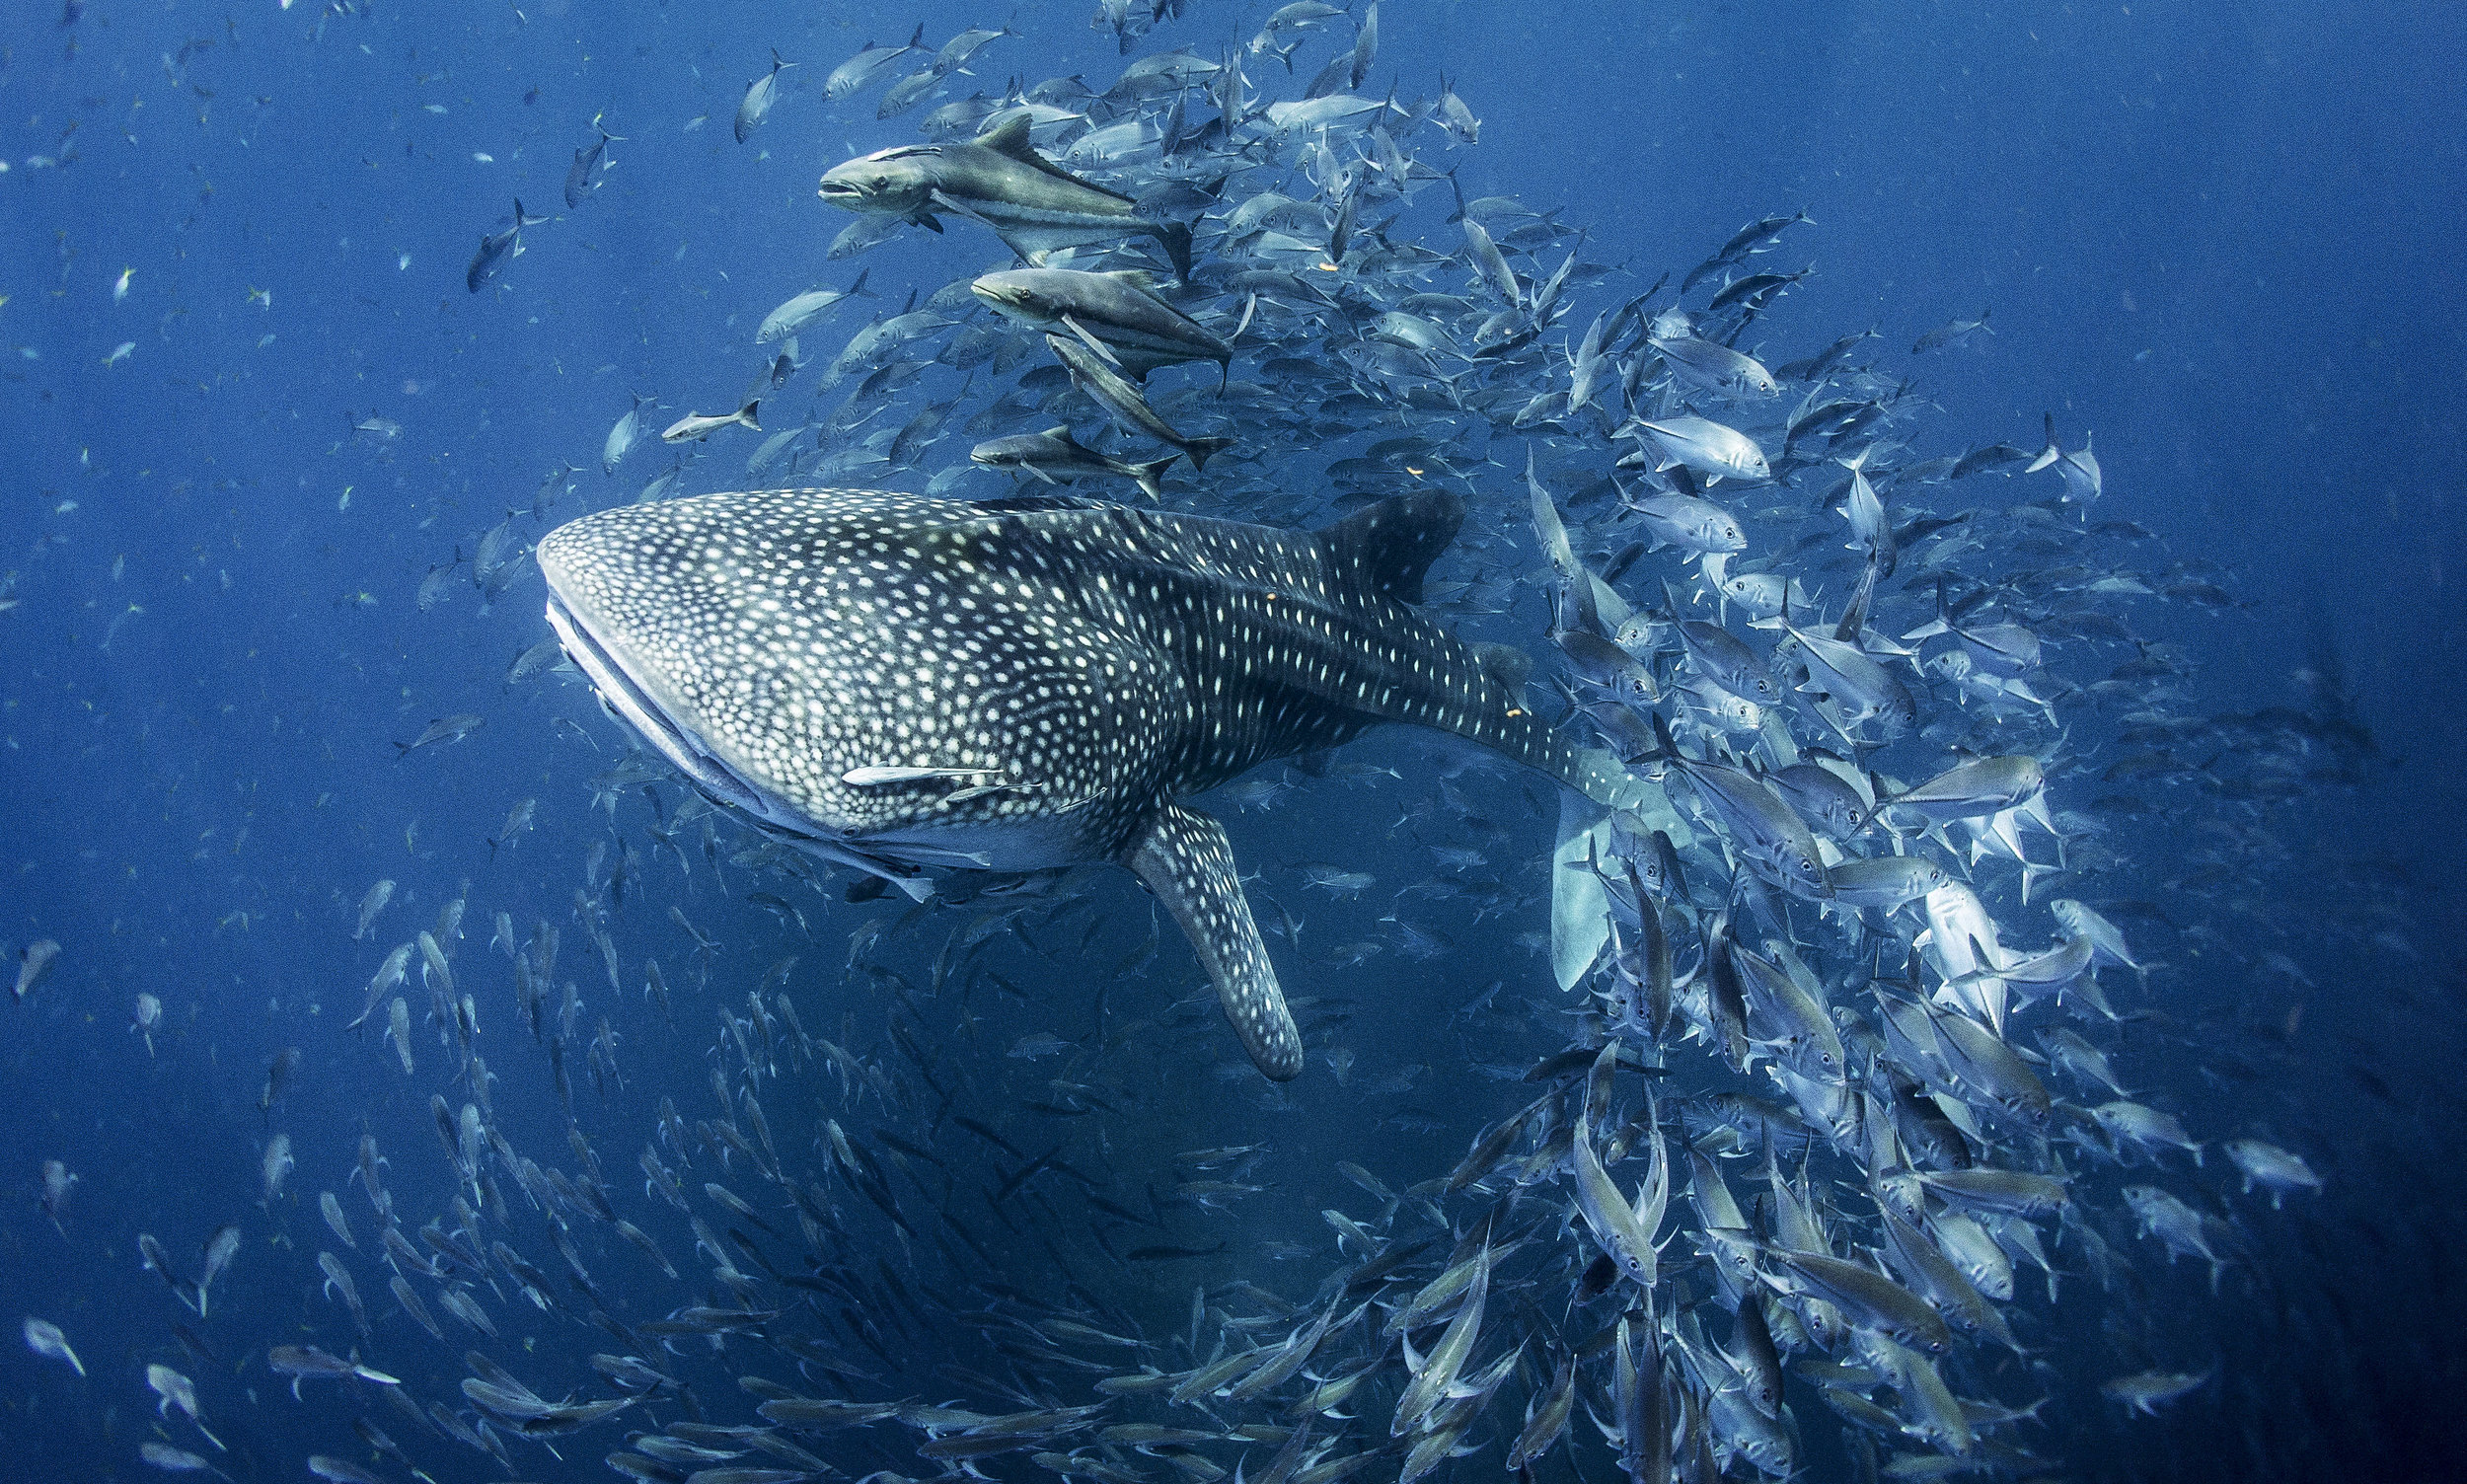 A whale shark swims effortlessly past a remote reef near the island of Koh Phangan, Thailand � using it as a natural �cleaning station�.Photo by Dan Charity  12 April 2017